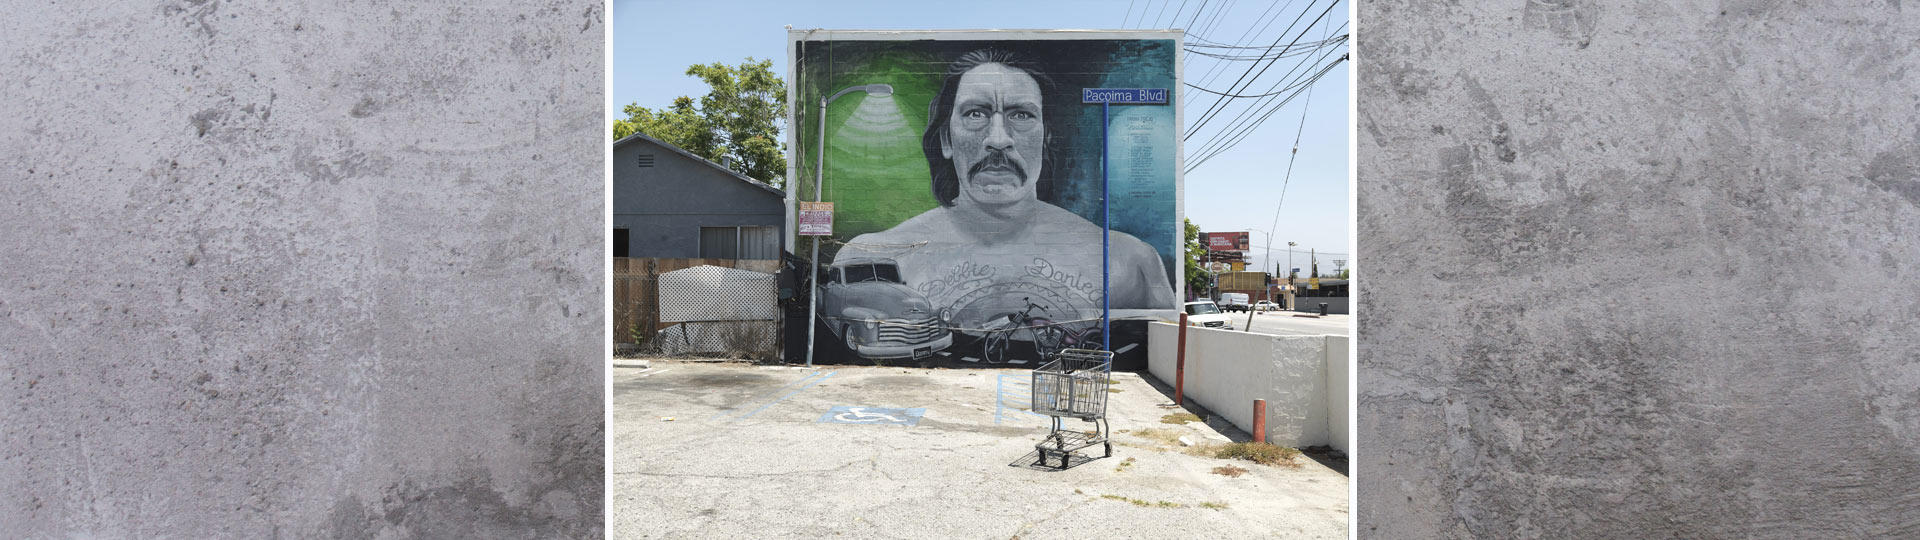 """Ken Gonzales-Day, """"Danny,"""" mural by Levi Ponce, Van Nuys Blvd., Pacoima, 2016"""